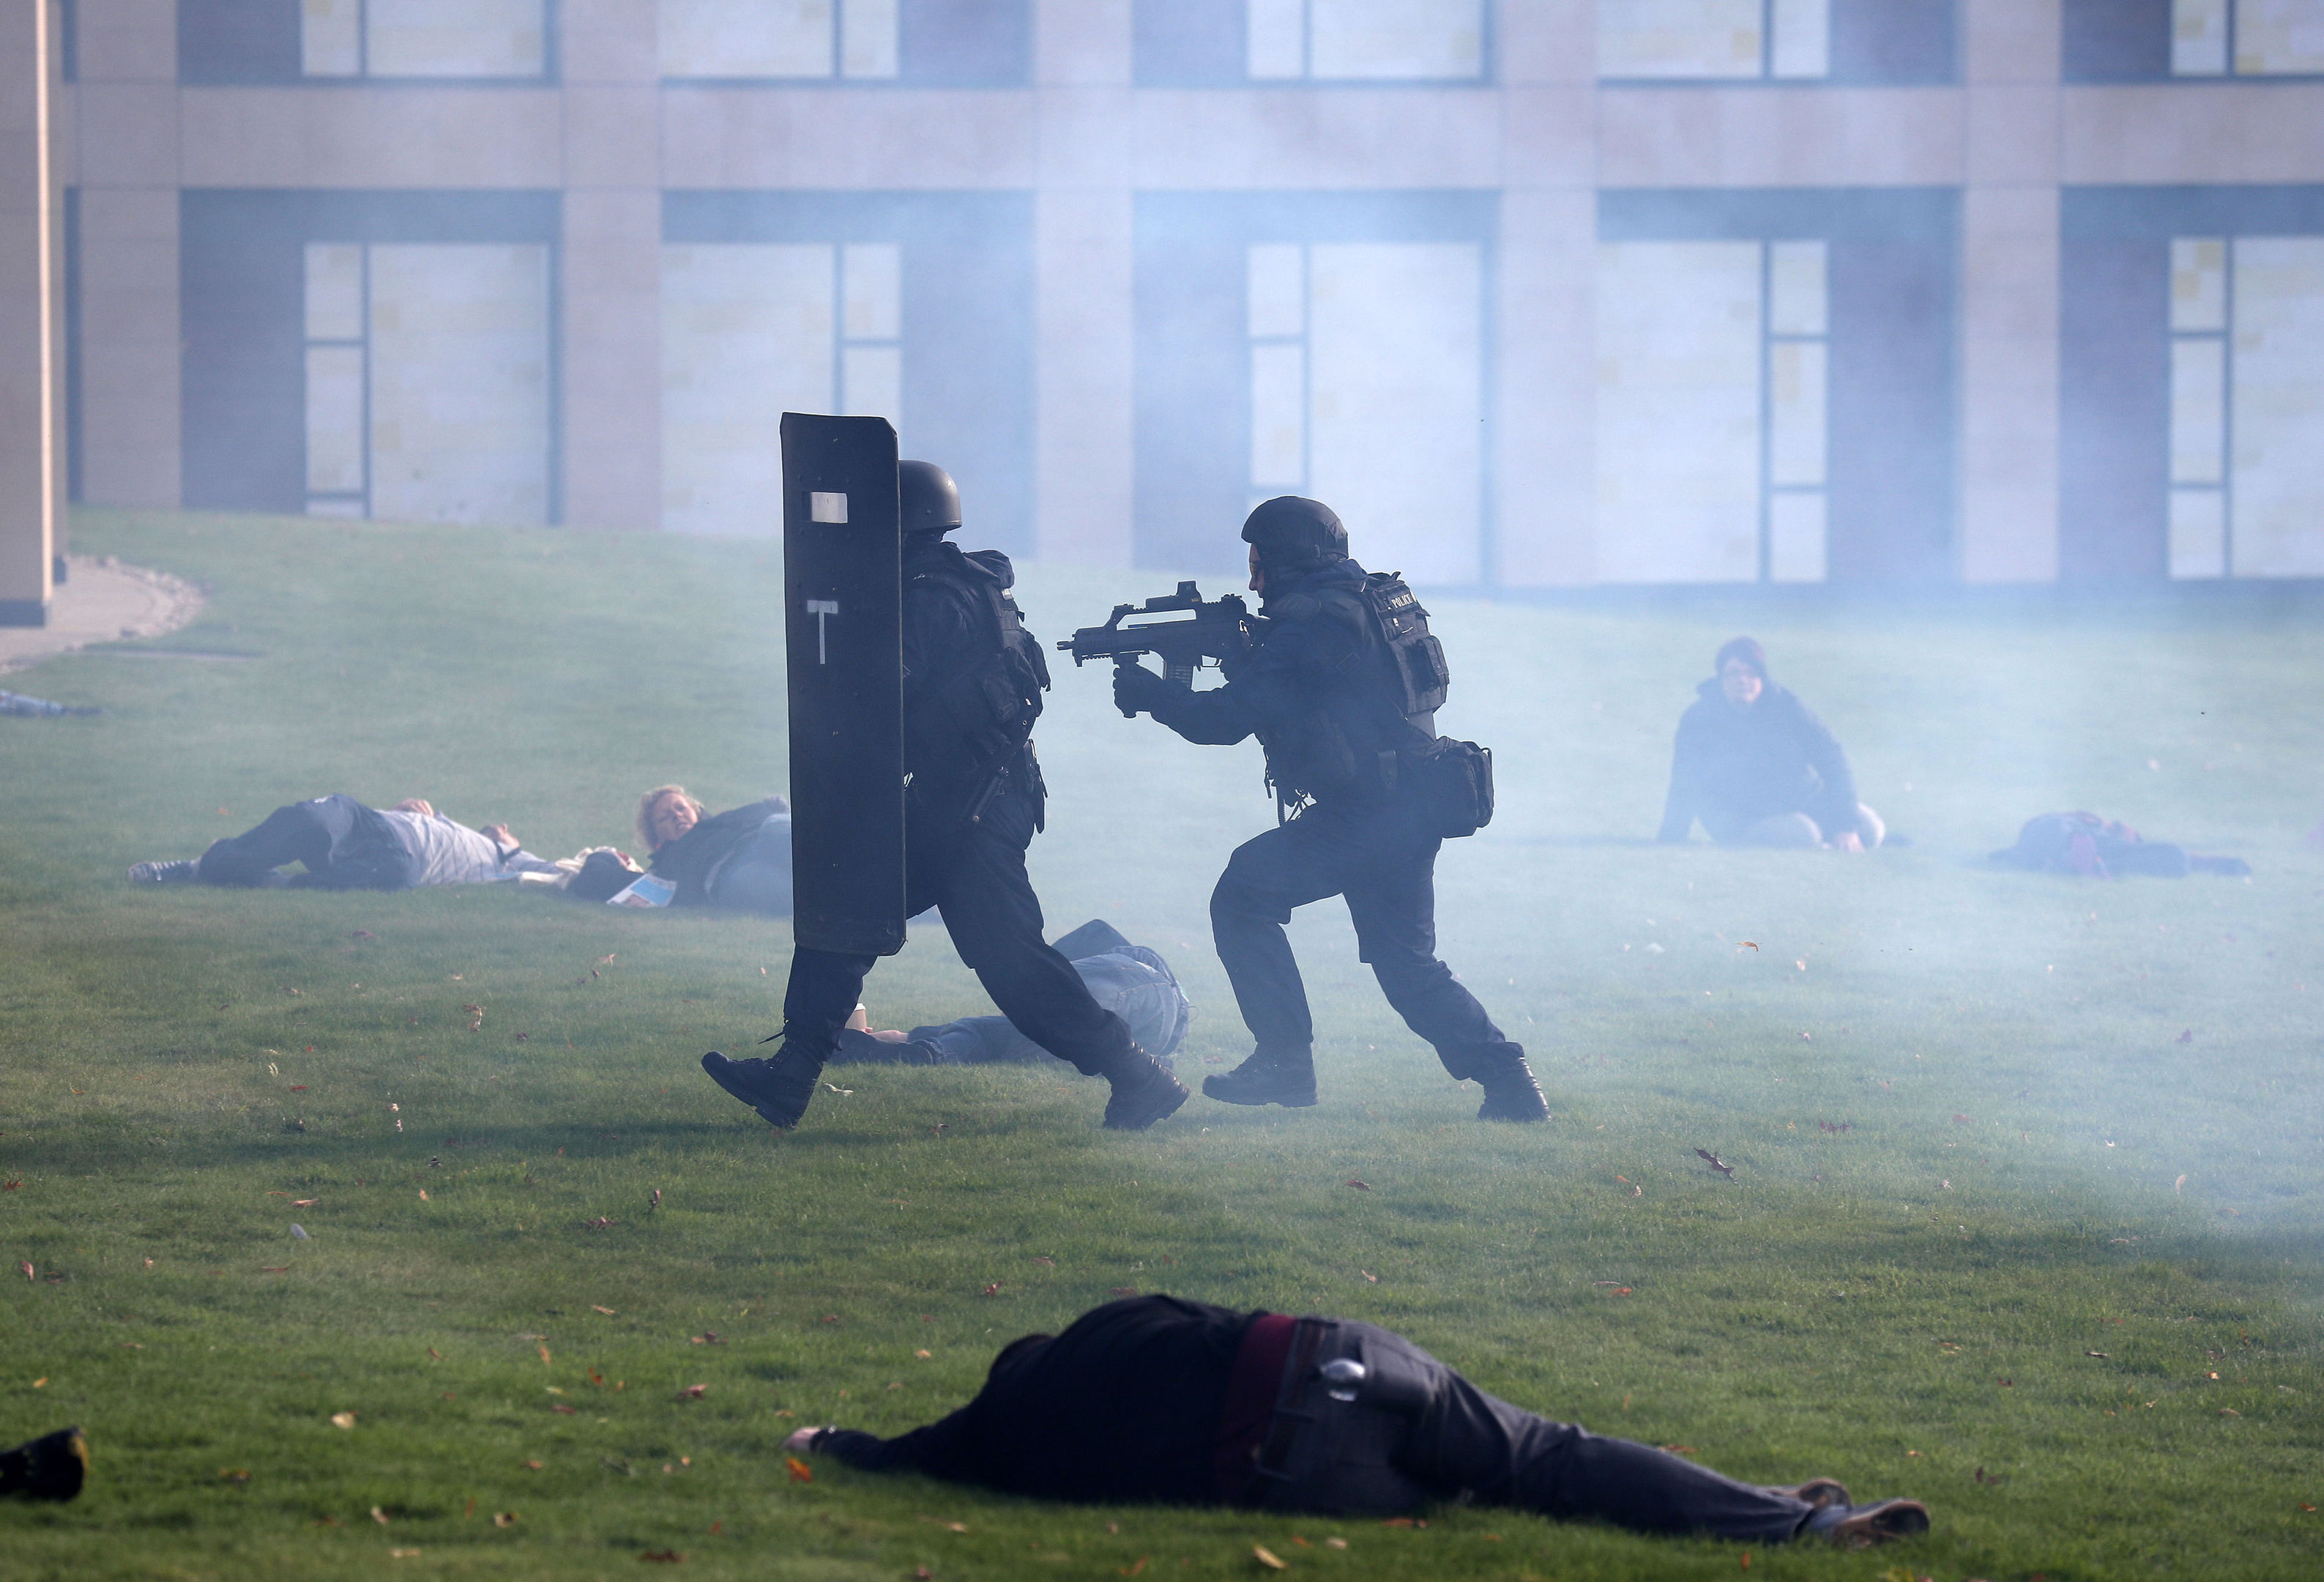 Police officers taking part in the counter-terrorism exercise